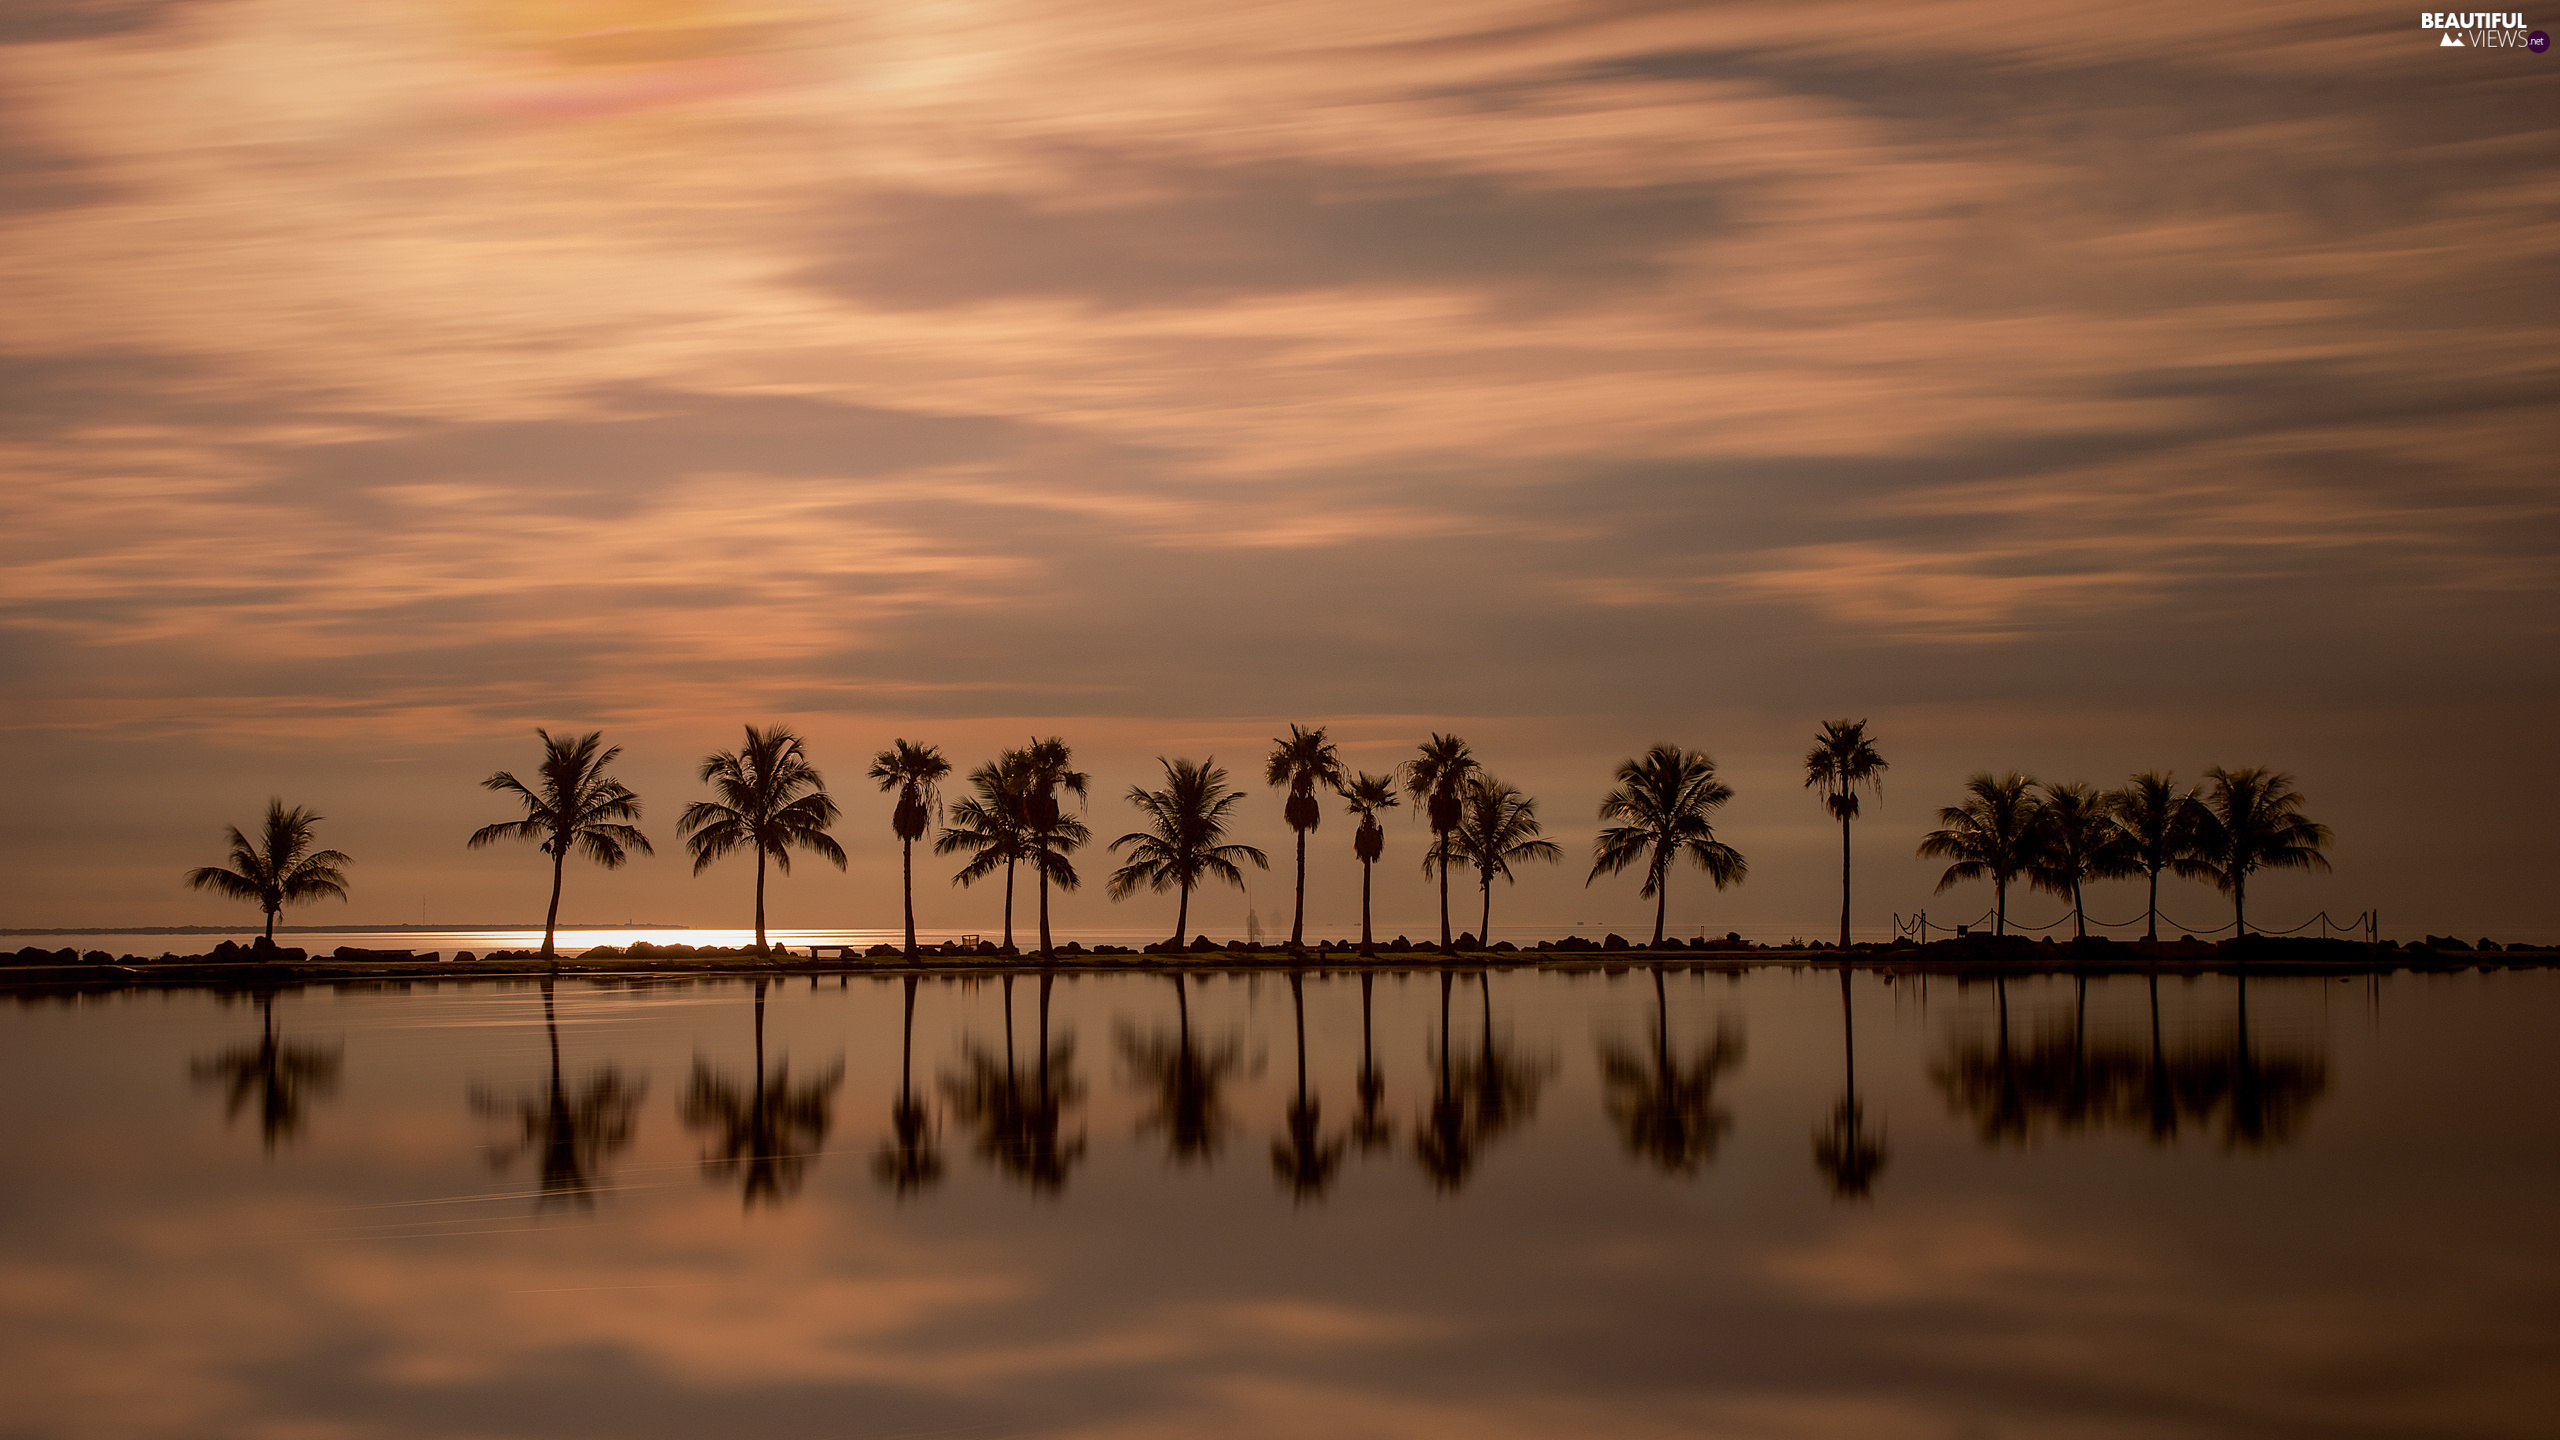 sea, Great Sunsets, Floryda, Palms, Miami